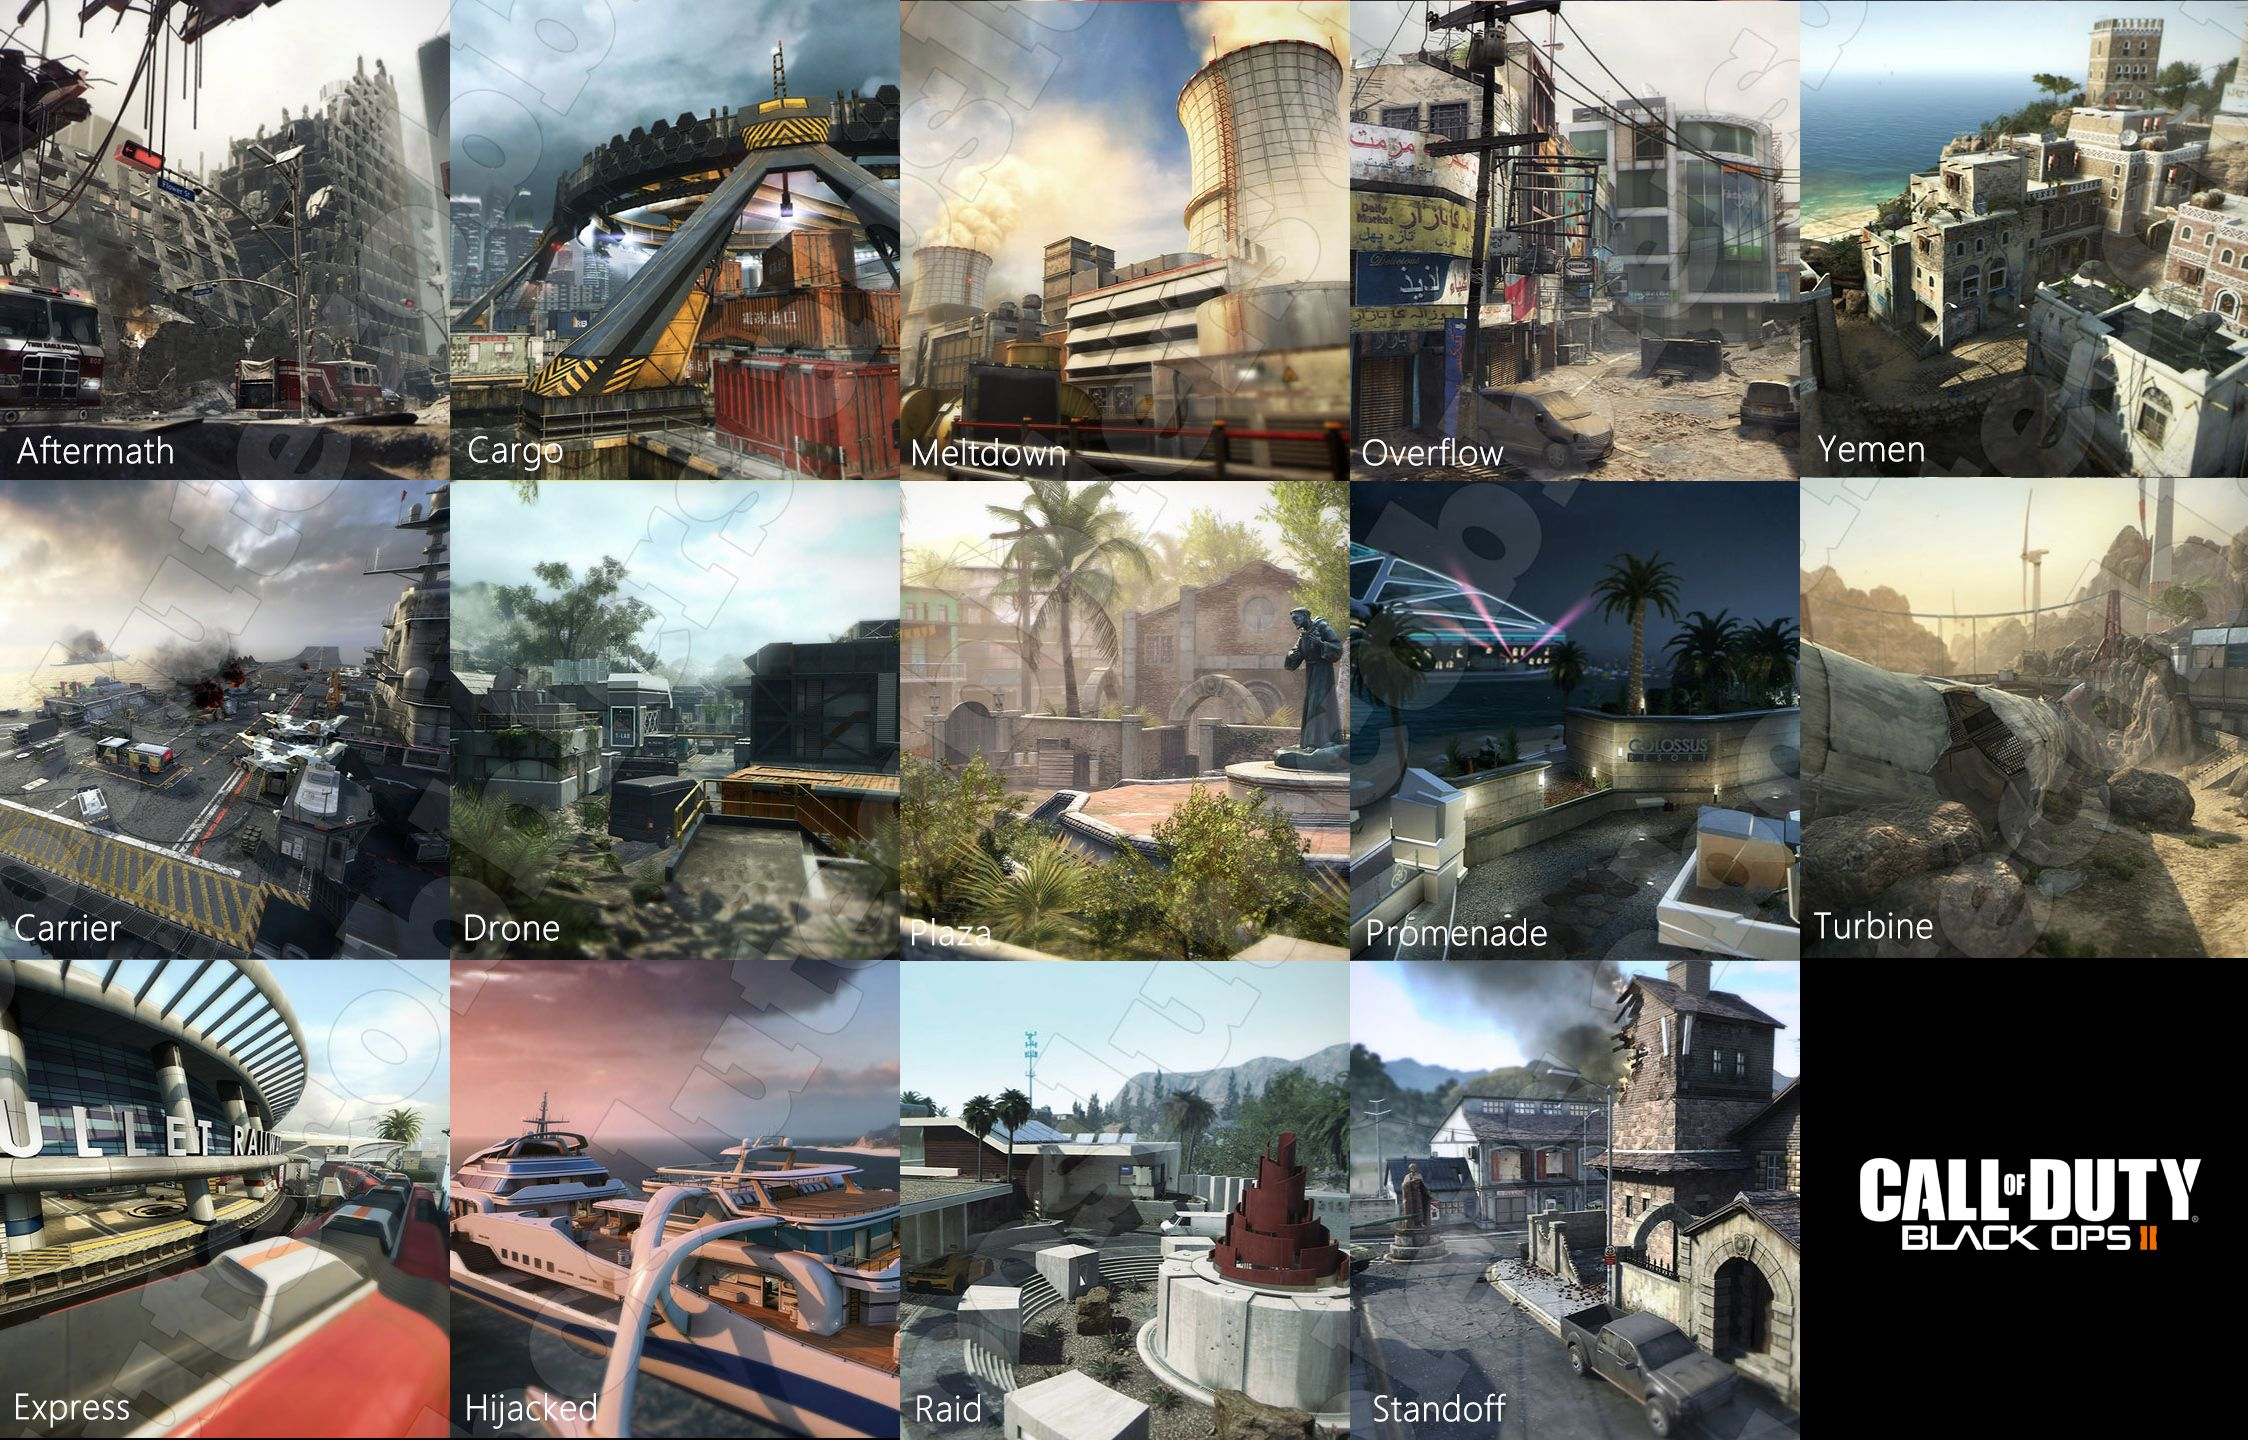 cod black ops maps | Elite update has now also revealed all ... on call of duty dlc maps, call of duty mw1 maps, minecraft bo2 maps, call of duty nuke town, call of duty war maps, call of duty black ops ii maps, call of duty black ops multiplayer maps, bo2 uprising maps, call of duty mw3 maps, call of duty mw maps, call of duty 4 maps, call of duty zombies maps, call of duty waw maps, cod bo2 maps, call of duty bo1 maps, call of duty maps list, call of duty nuketown maps, bo2 dlc maps, call of duty minecraft maps, call of duty ghosts,